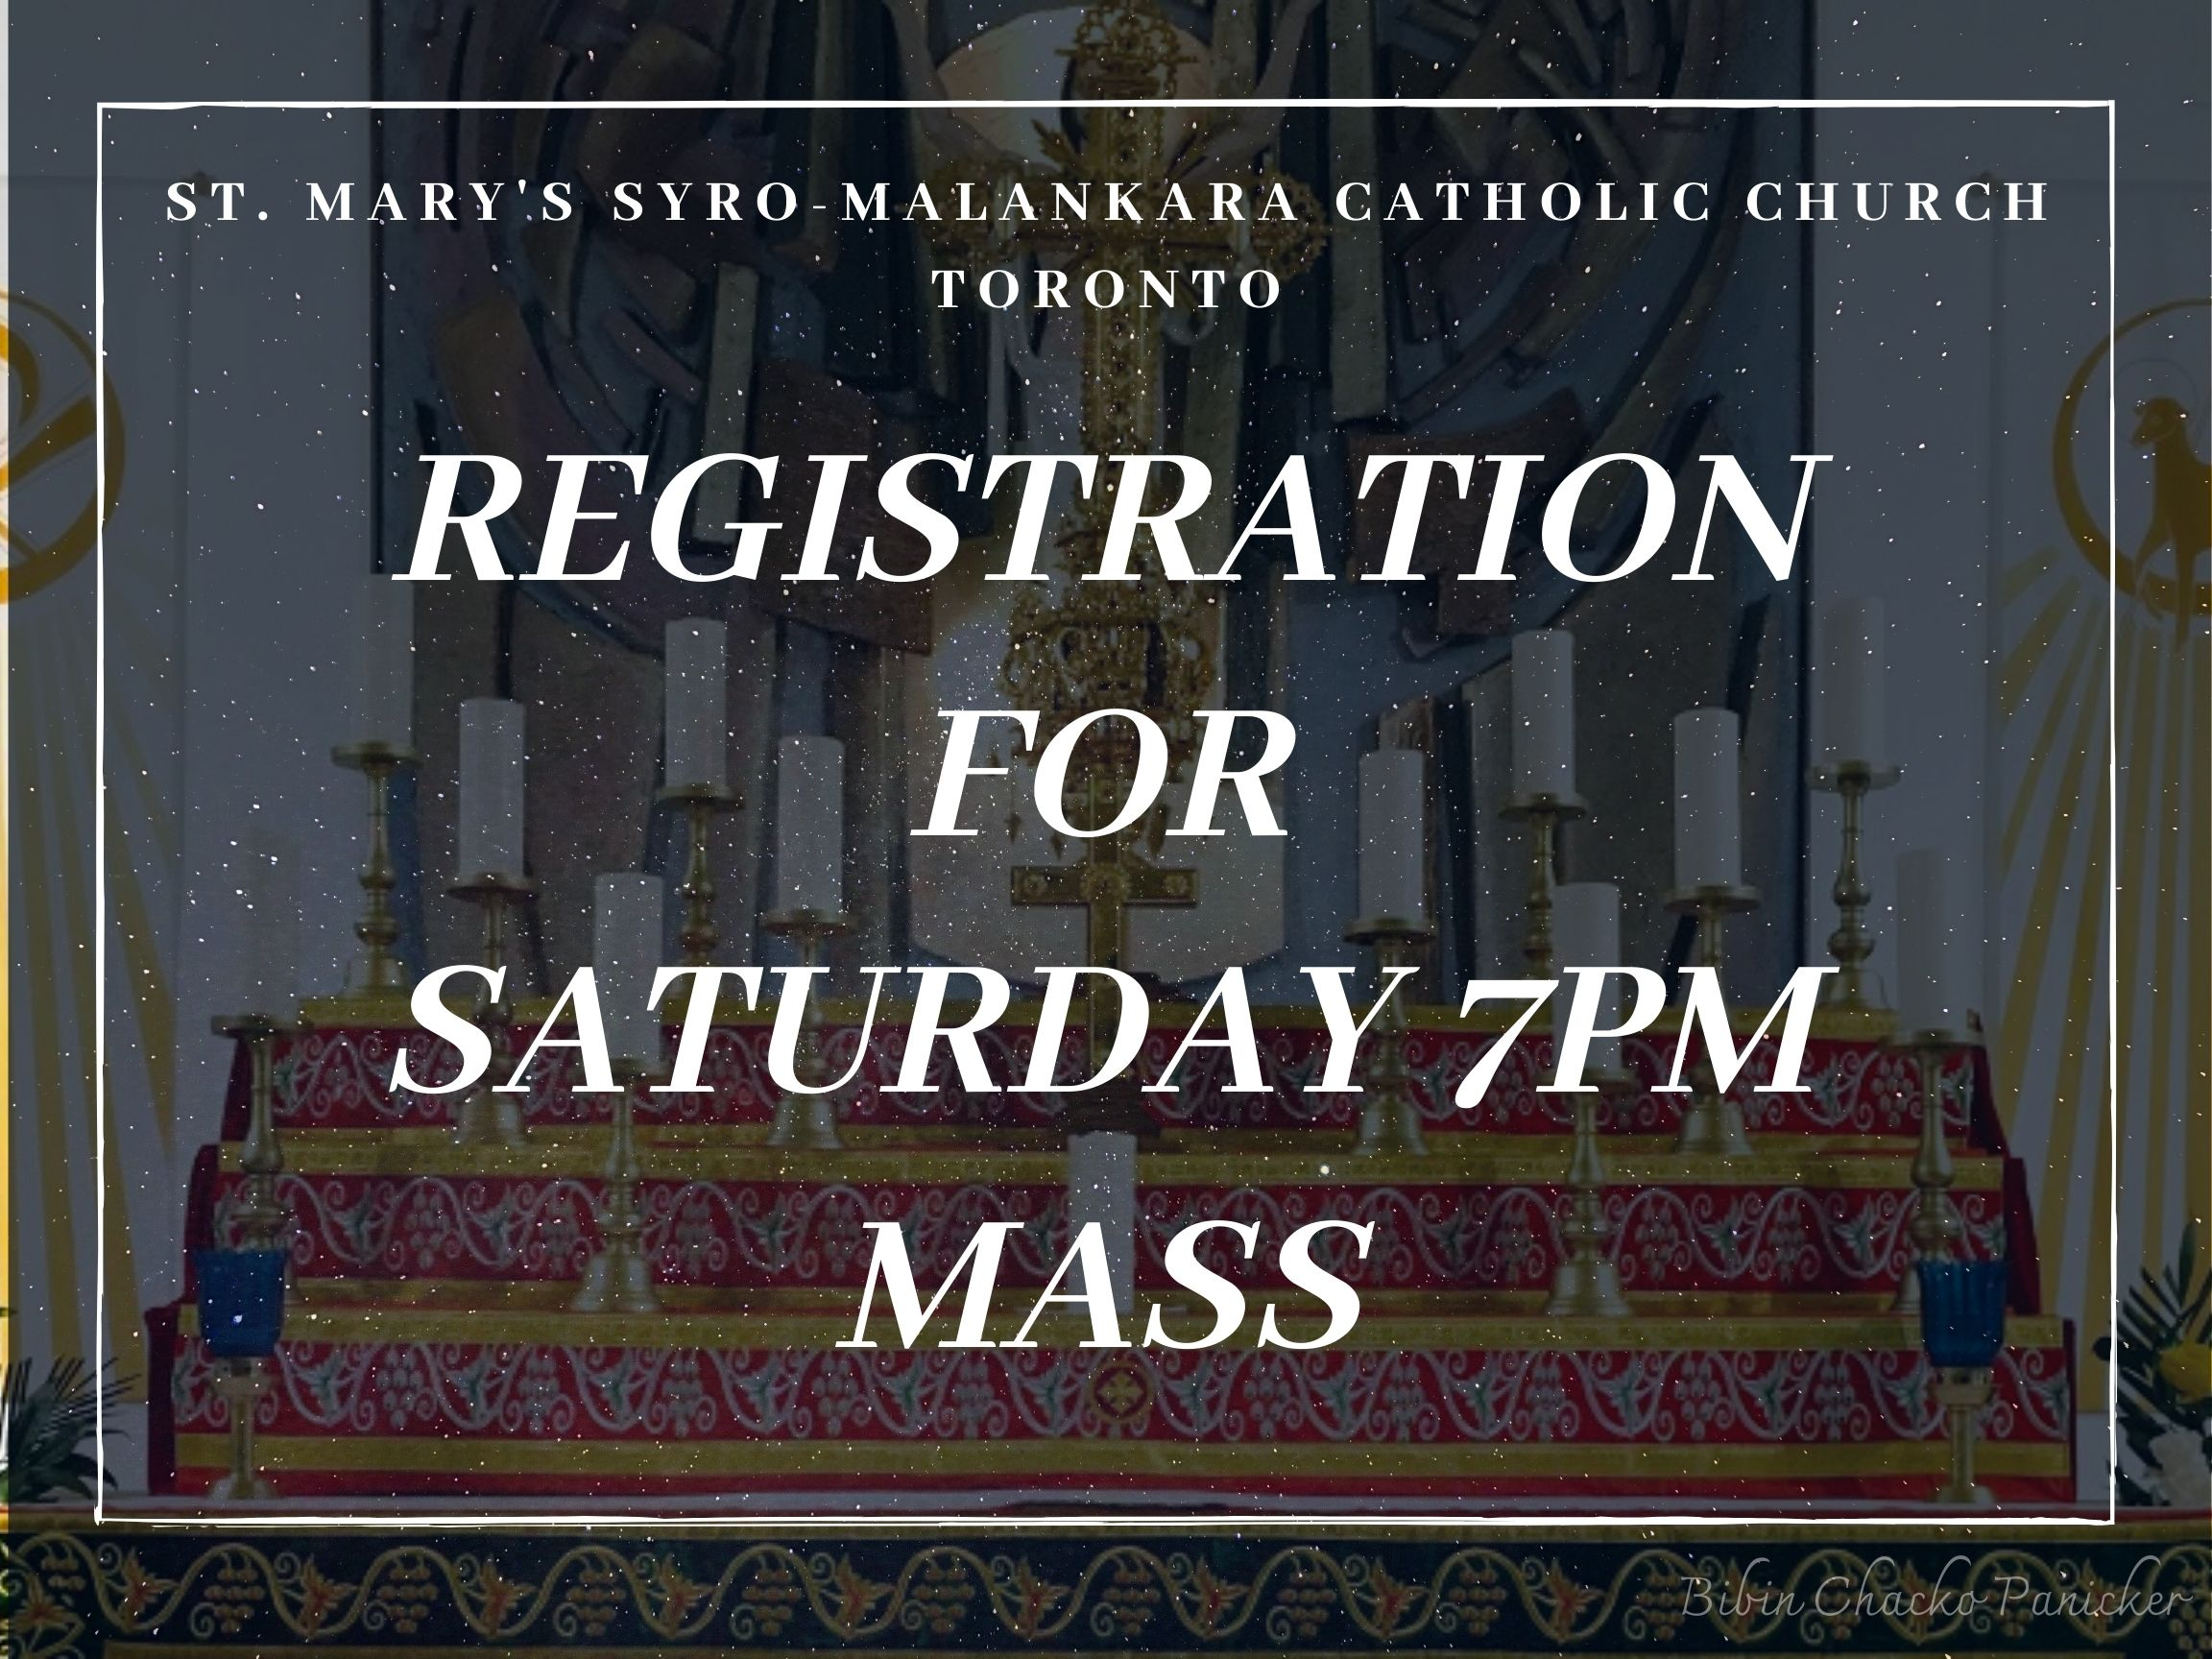 Saturday 7pm Mass sign up - St Marys' Syro-Malankara Catholic Church, Toronto